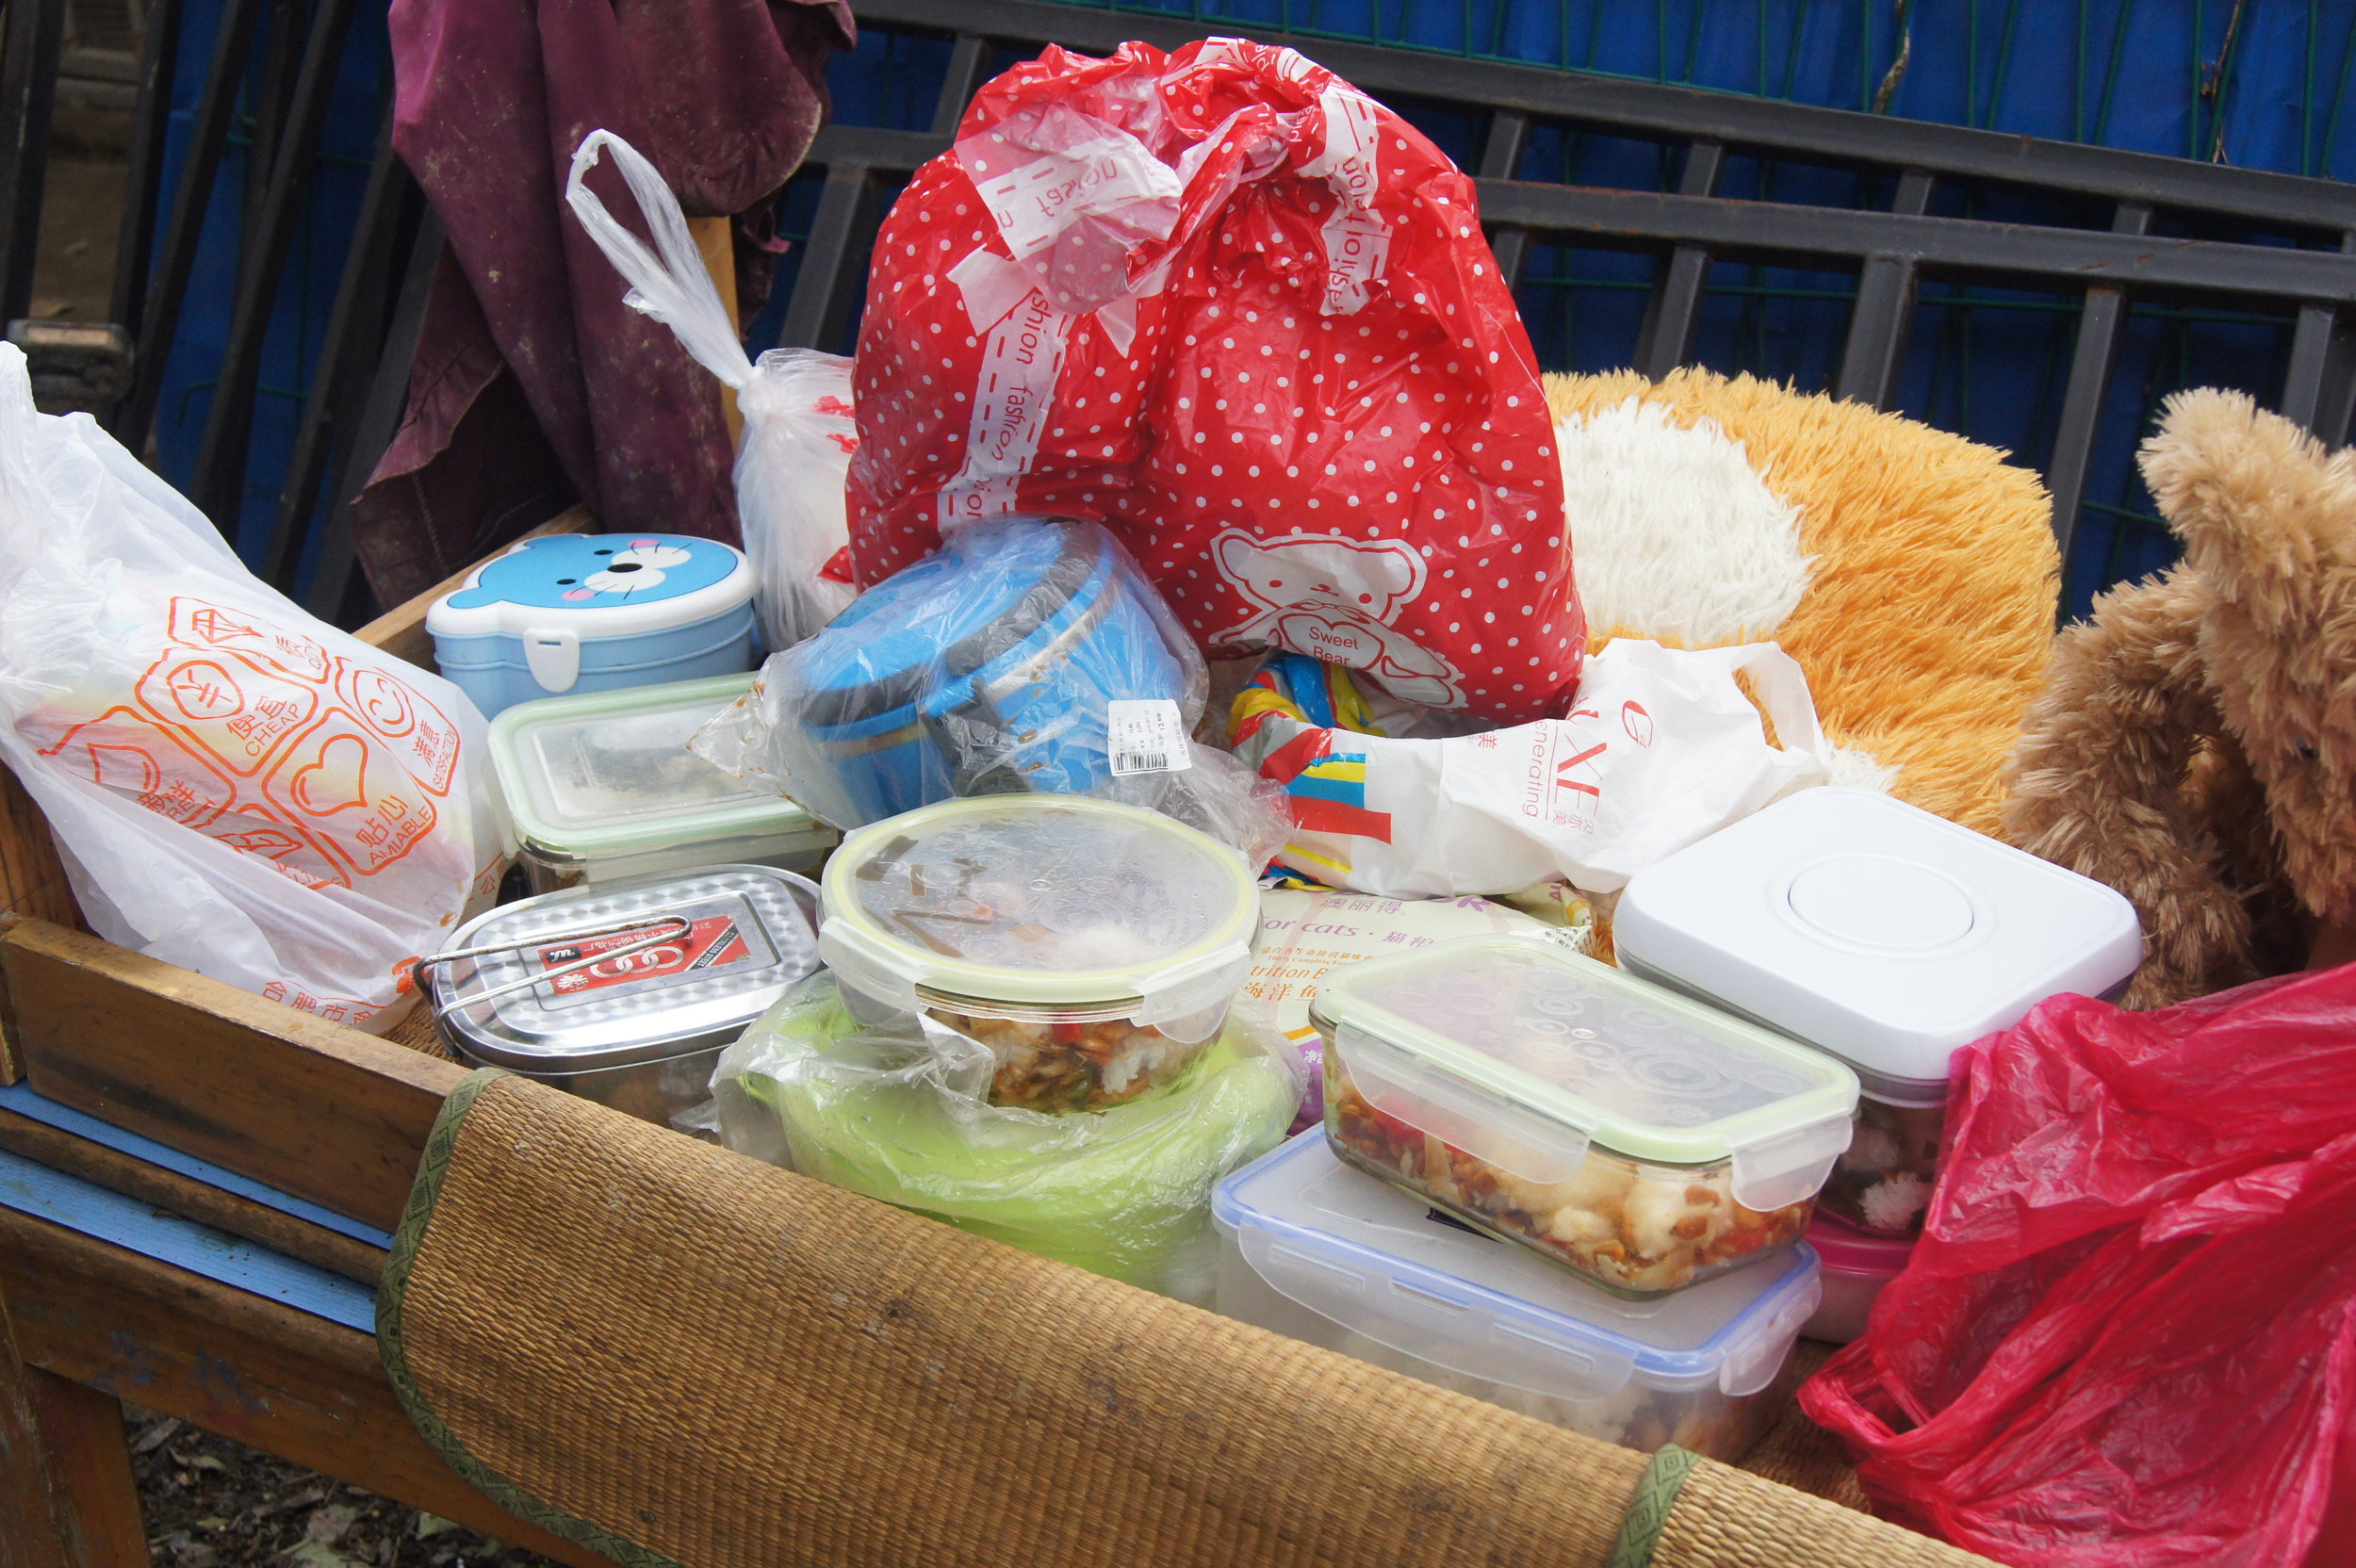 Student brought left-over food from the last meal and prepared gifts for donation